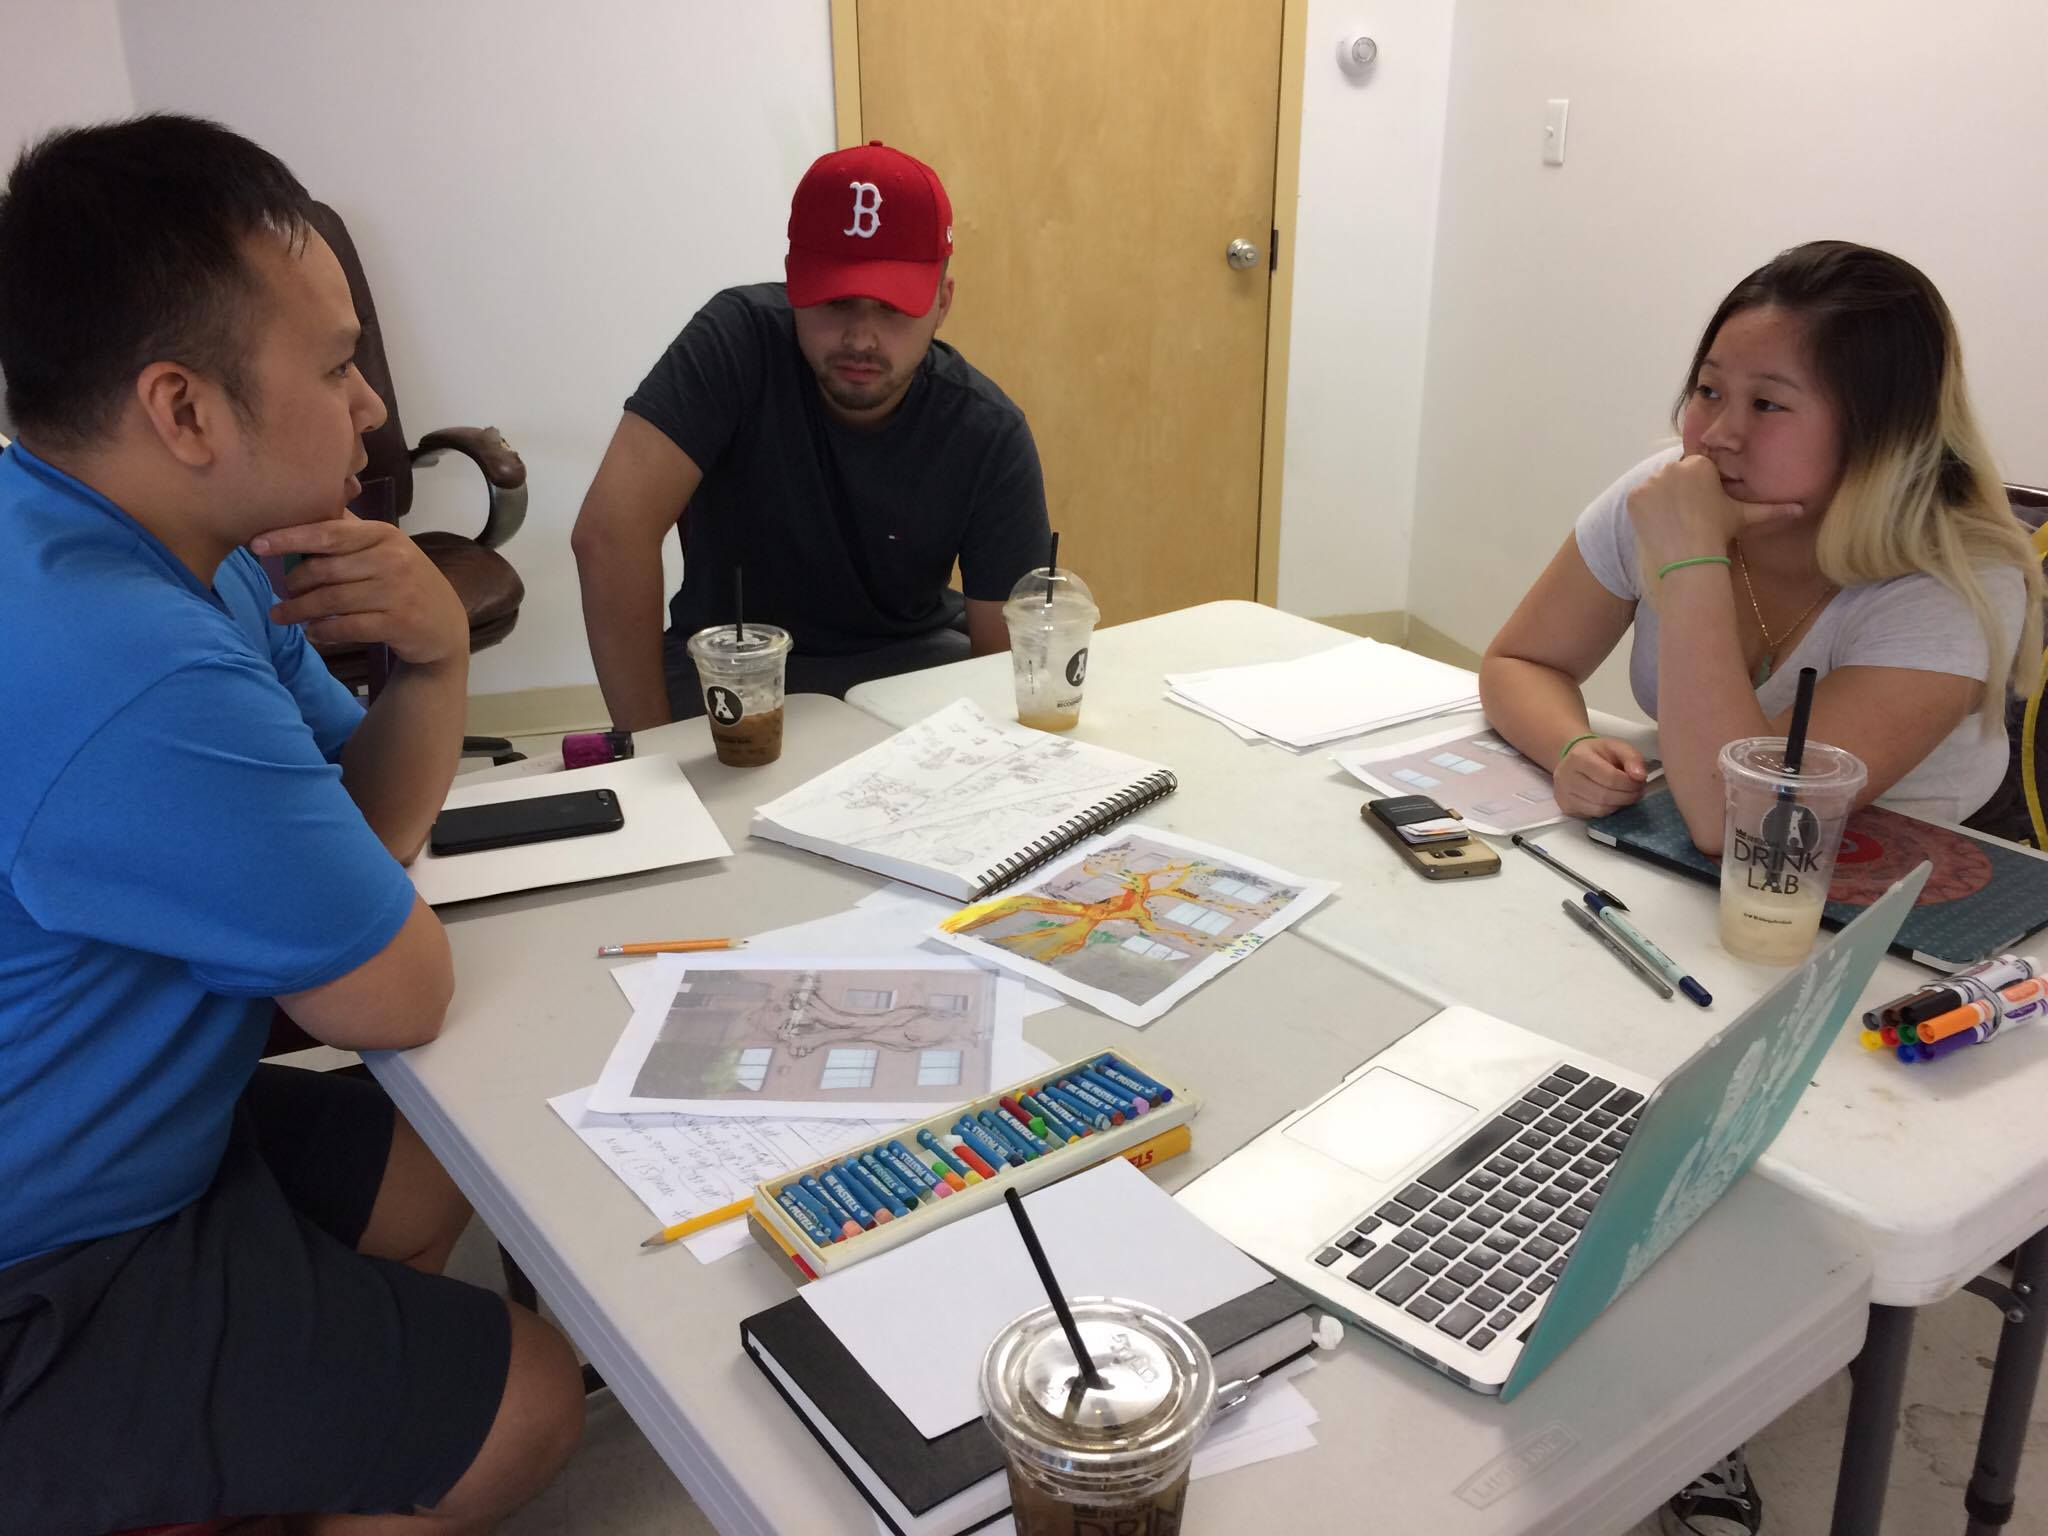 Left to right: Tam, Tony, and Kathy (Photo: Tran)  Artist's at work! In the moment, artist team were discussing how designs could improve!